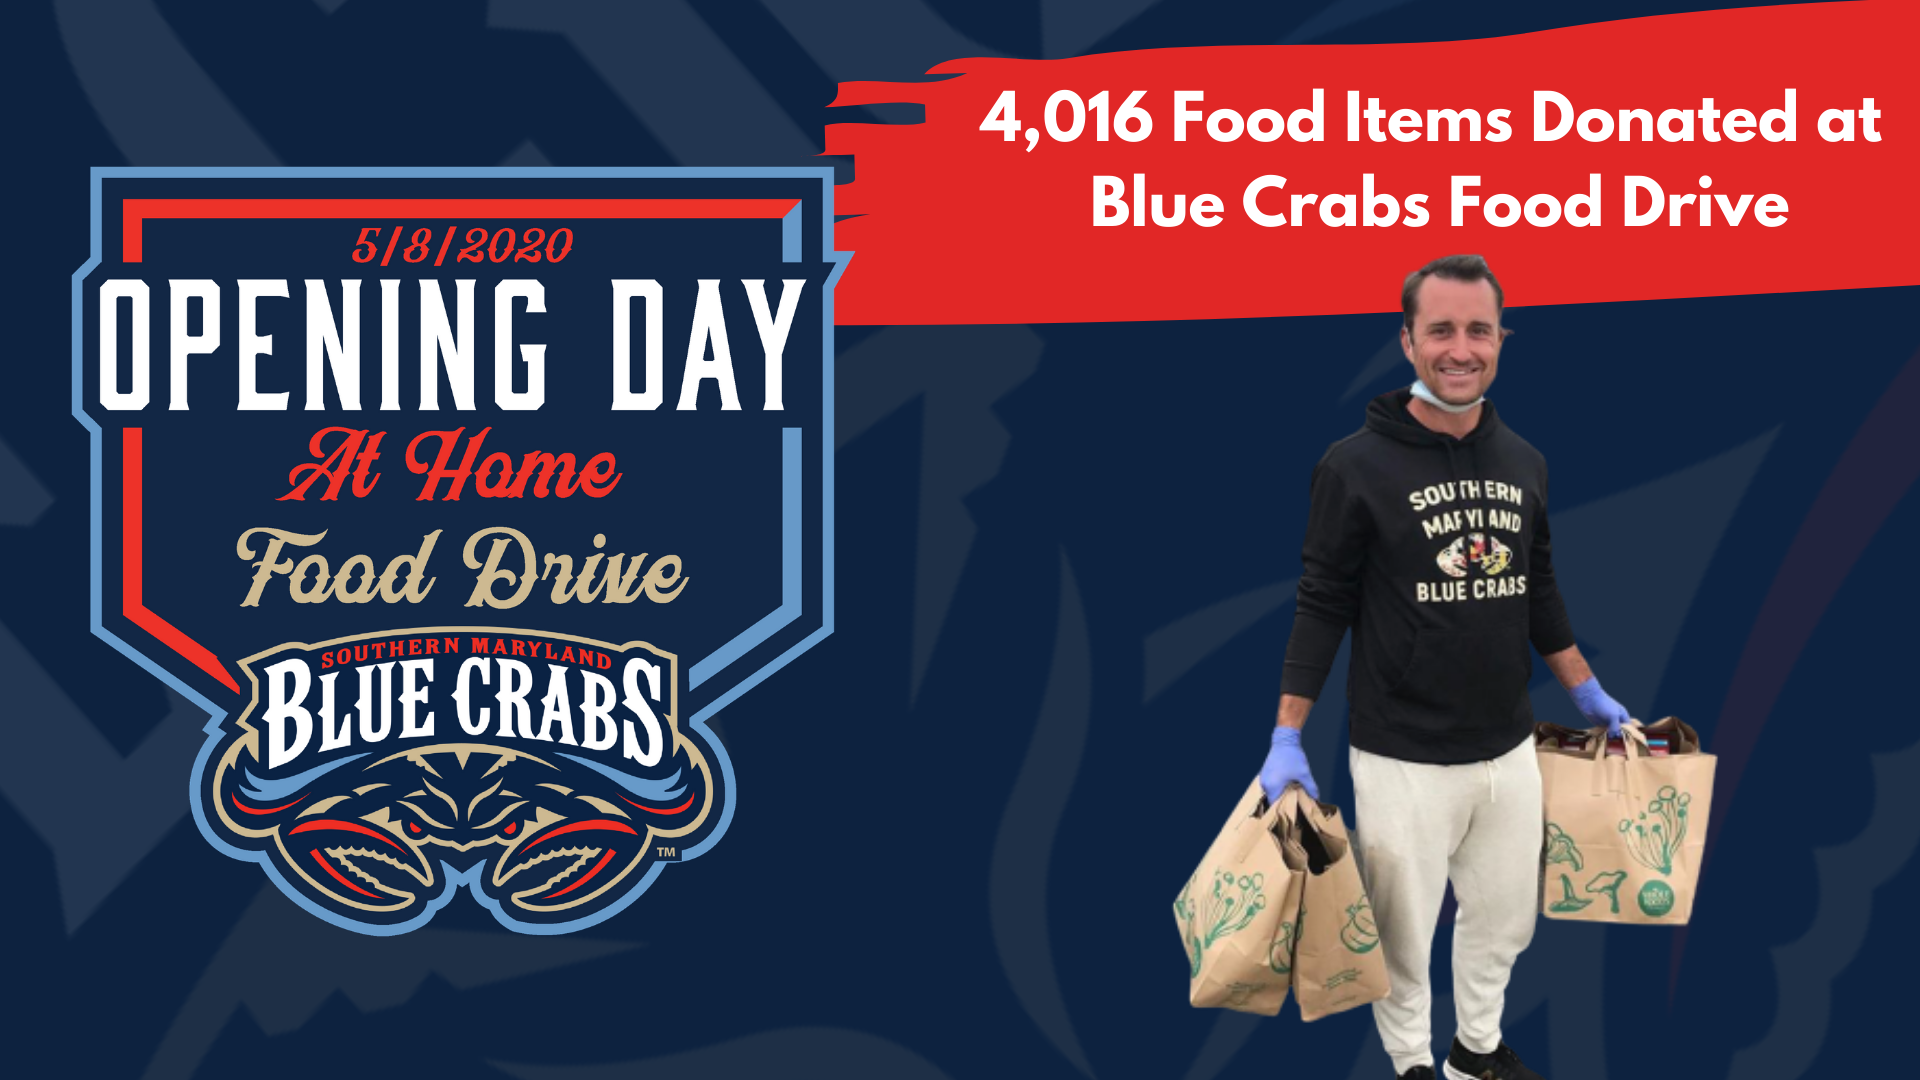 Blue Crabs Food Drive Collects 4,106 Food Items